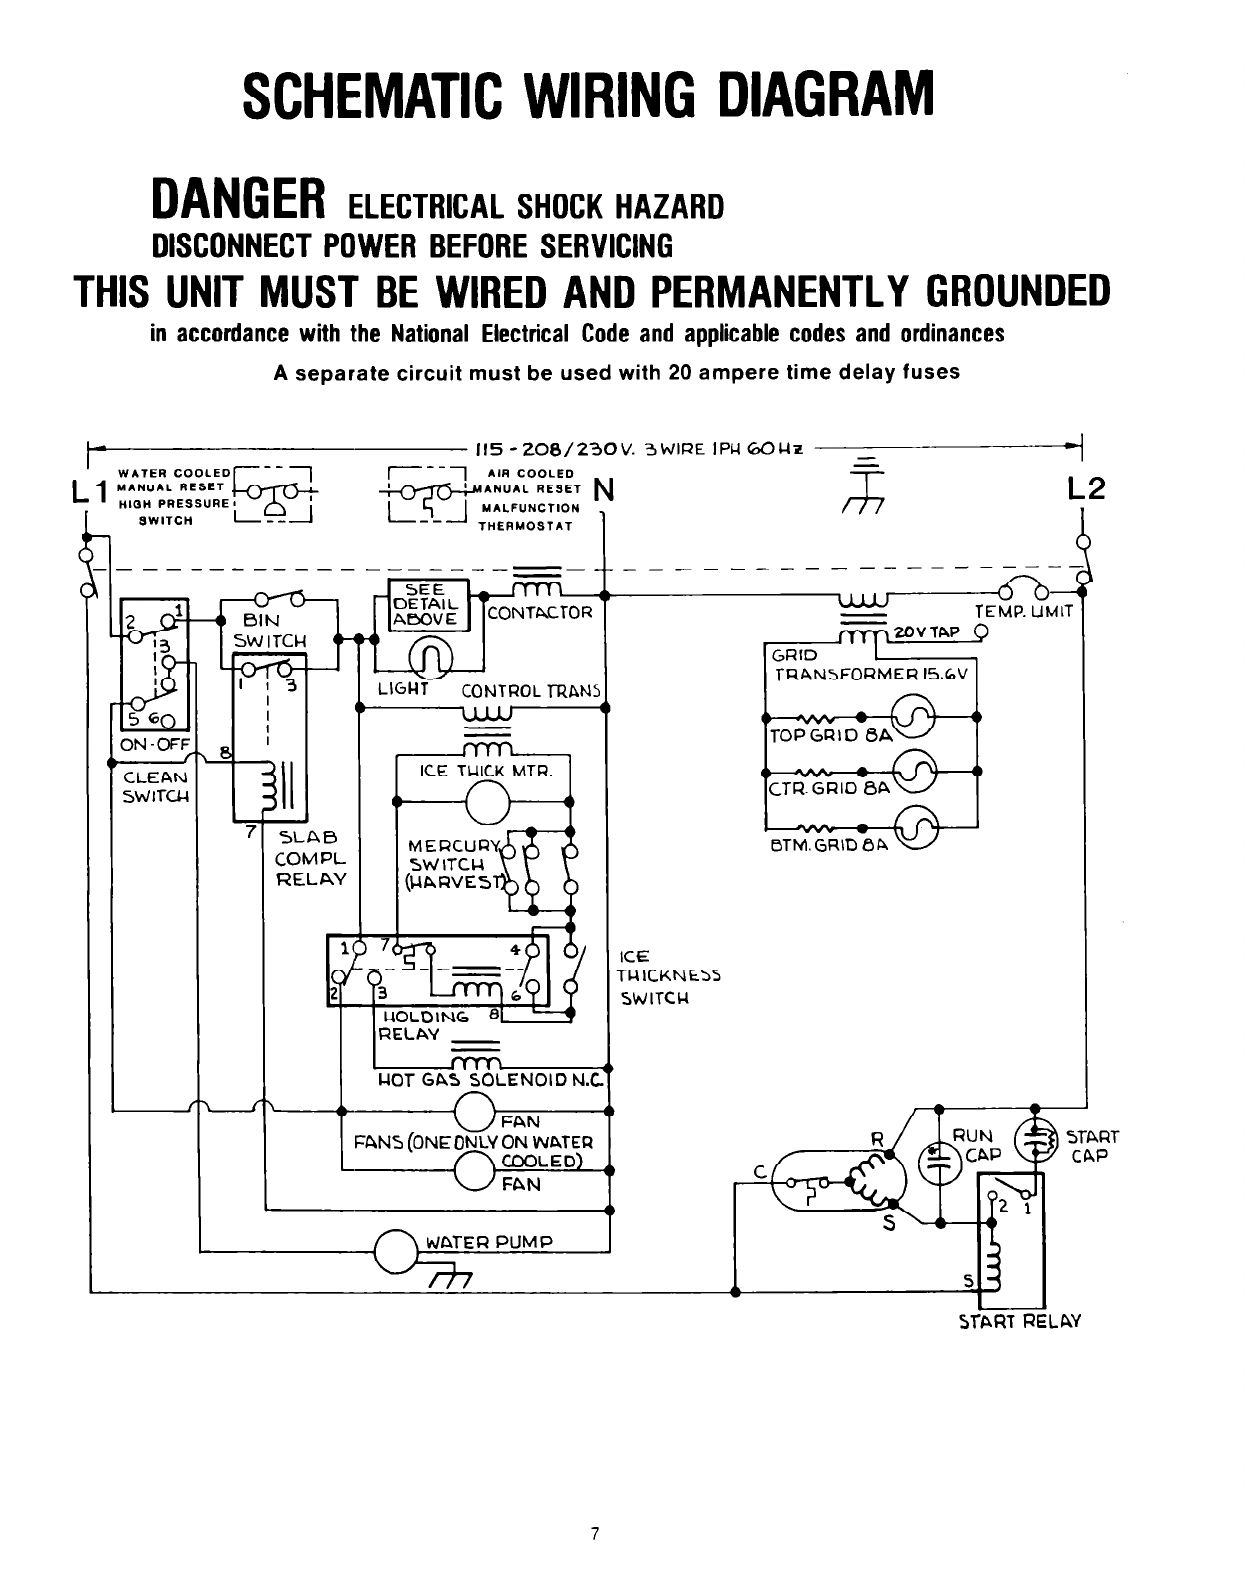 3616883c 28de 484d a98e f66647d6fb0d bg7 whirlpool wiring diagram whirlpool refrigerator model number list ge refrigerator ice maker wiring diagram at soozxer.org